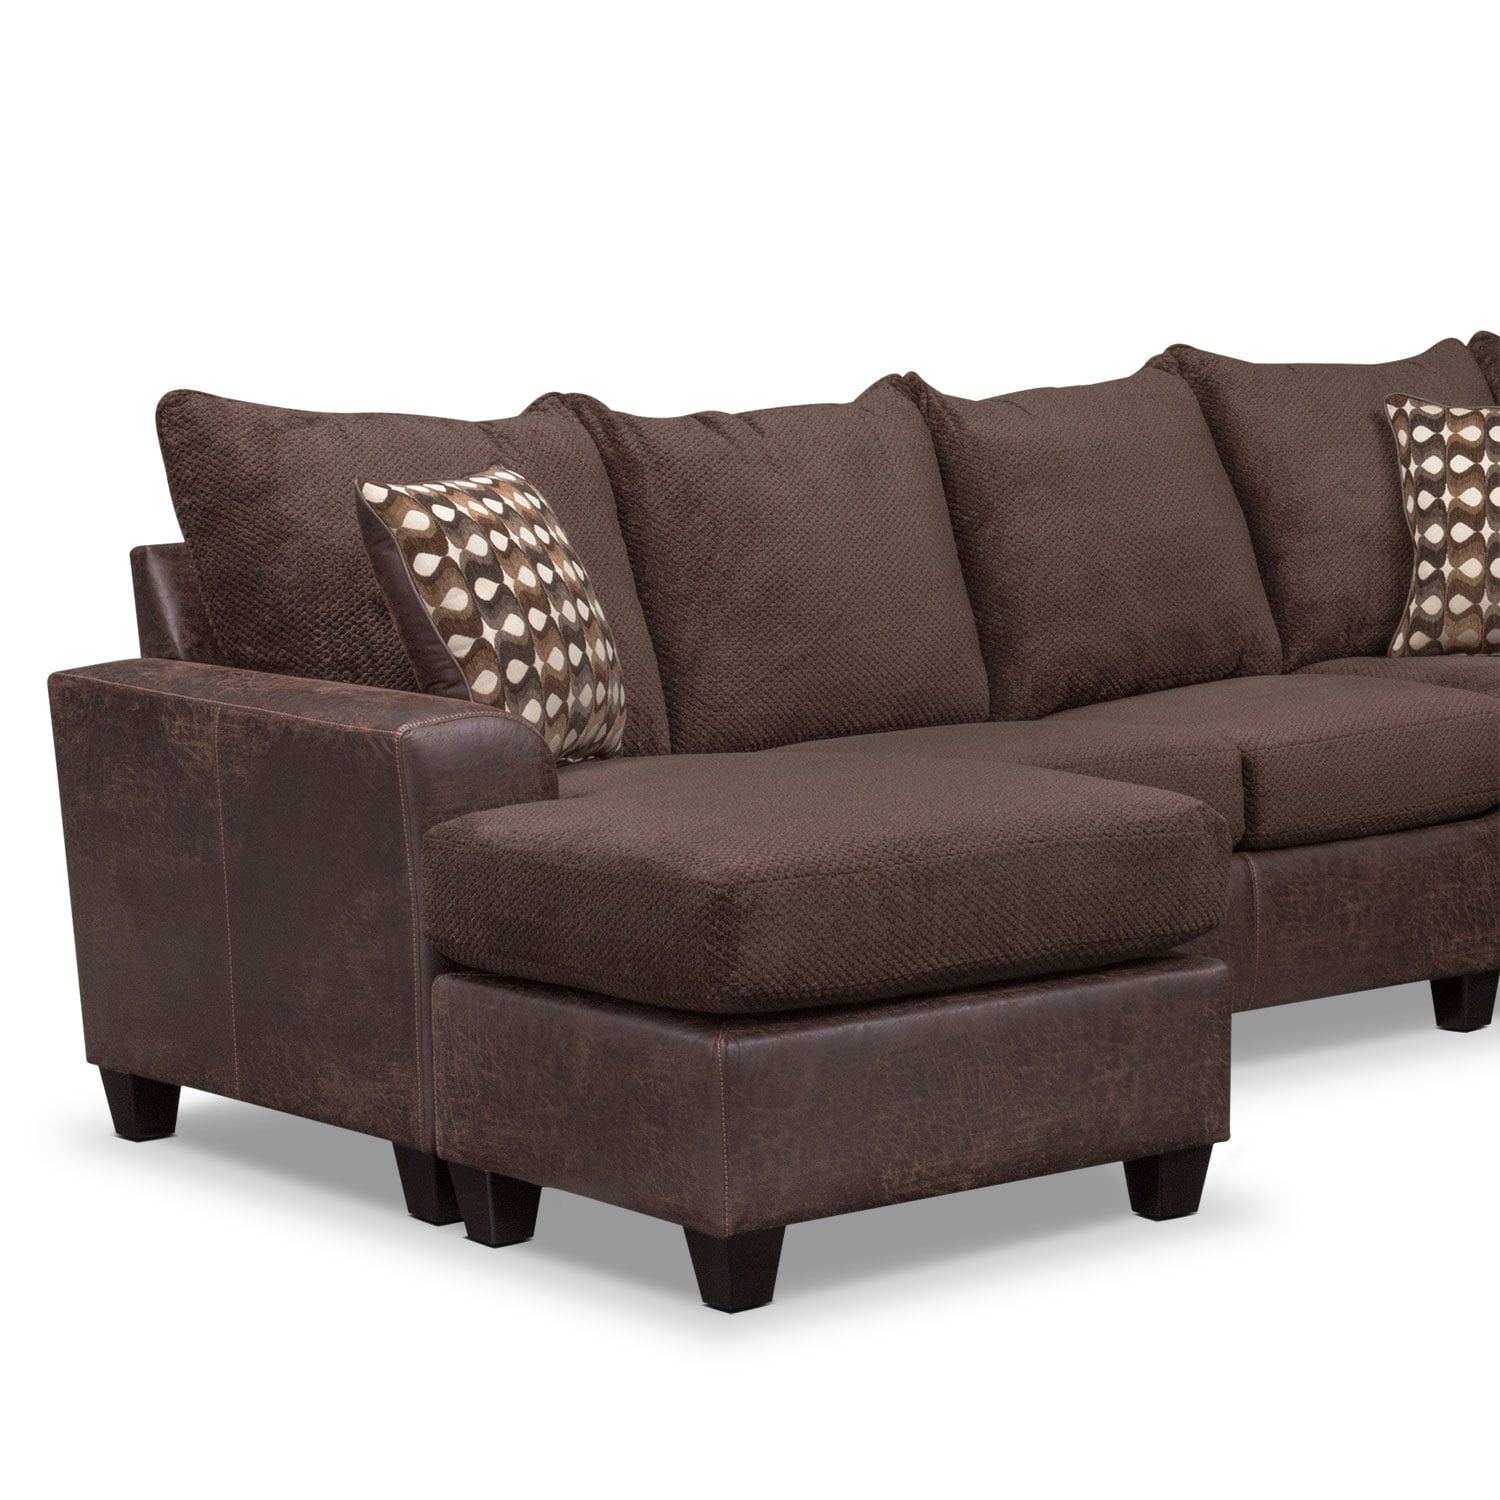 Brando 3 piece sectional with modular chaise chocolate for Signature furniture